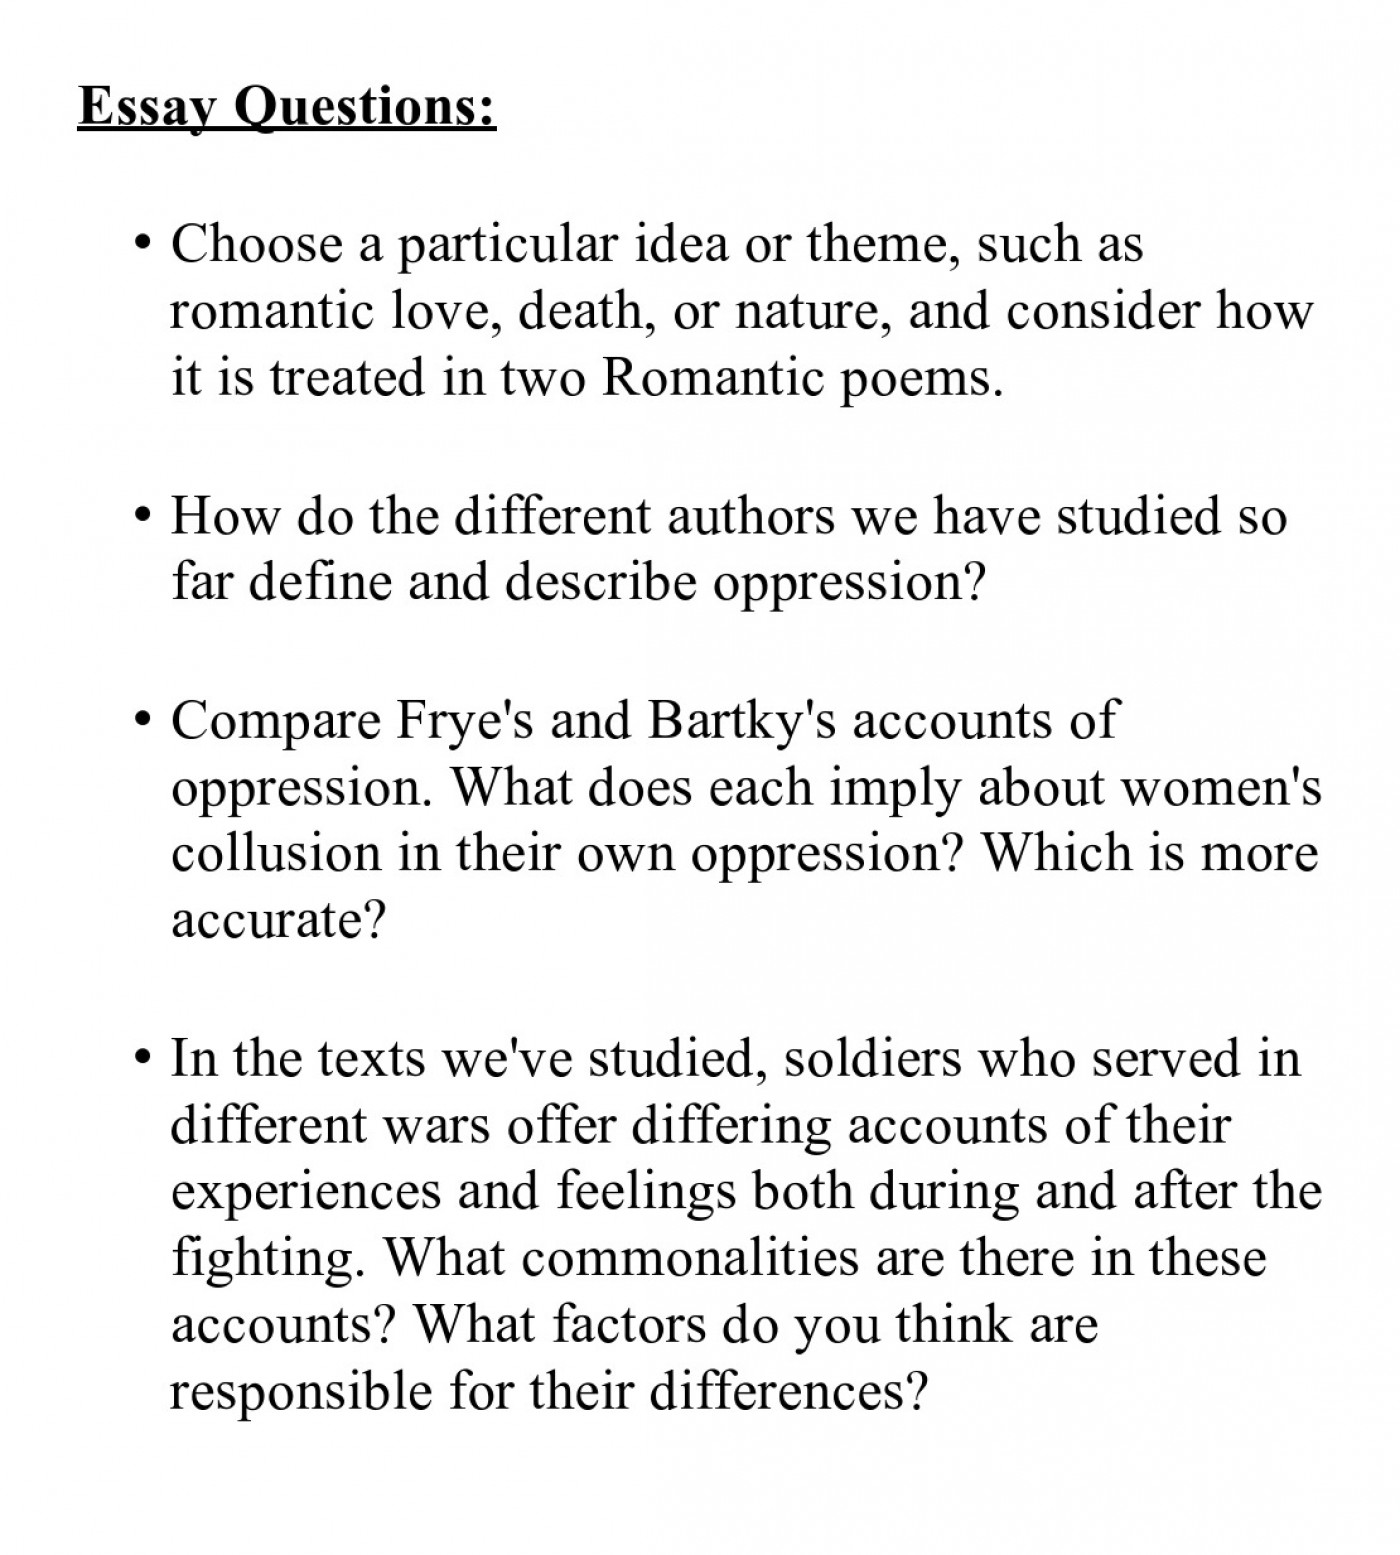 007 Essay Example Prompts Questions Best Narrative College Topics For Frankenstein By Mary Shelley Writing High School Economics 1400